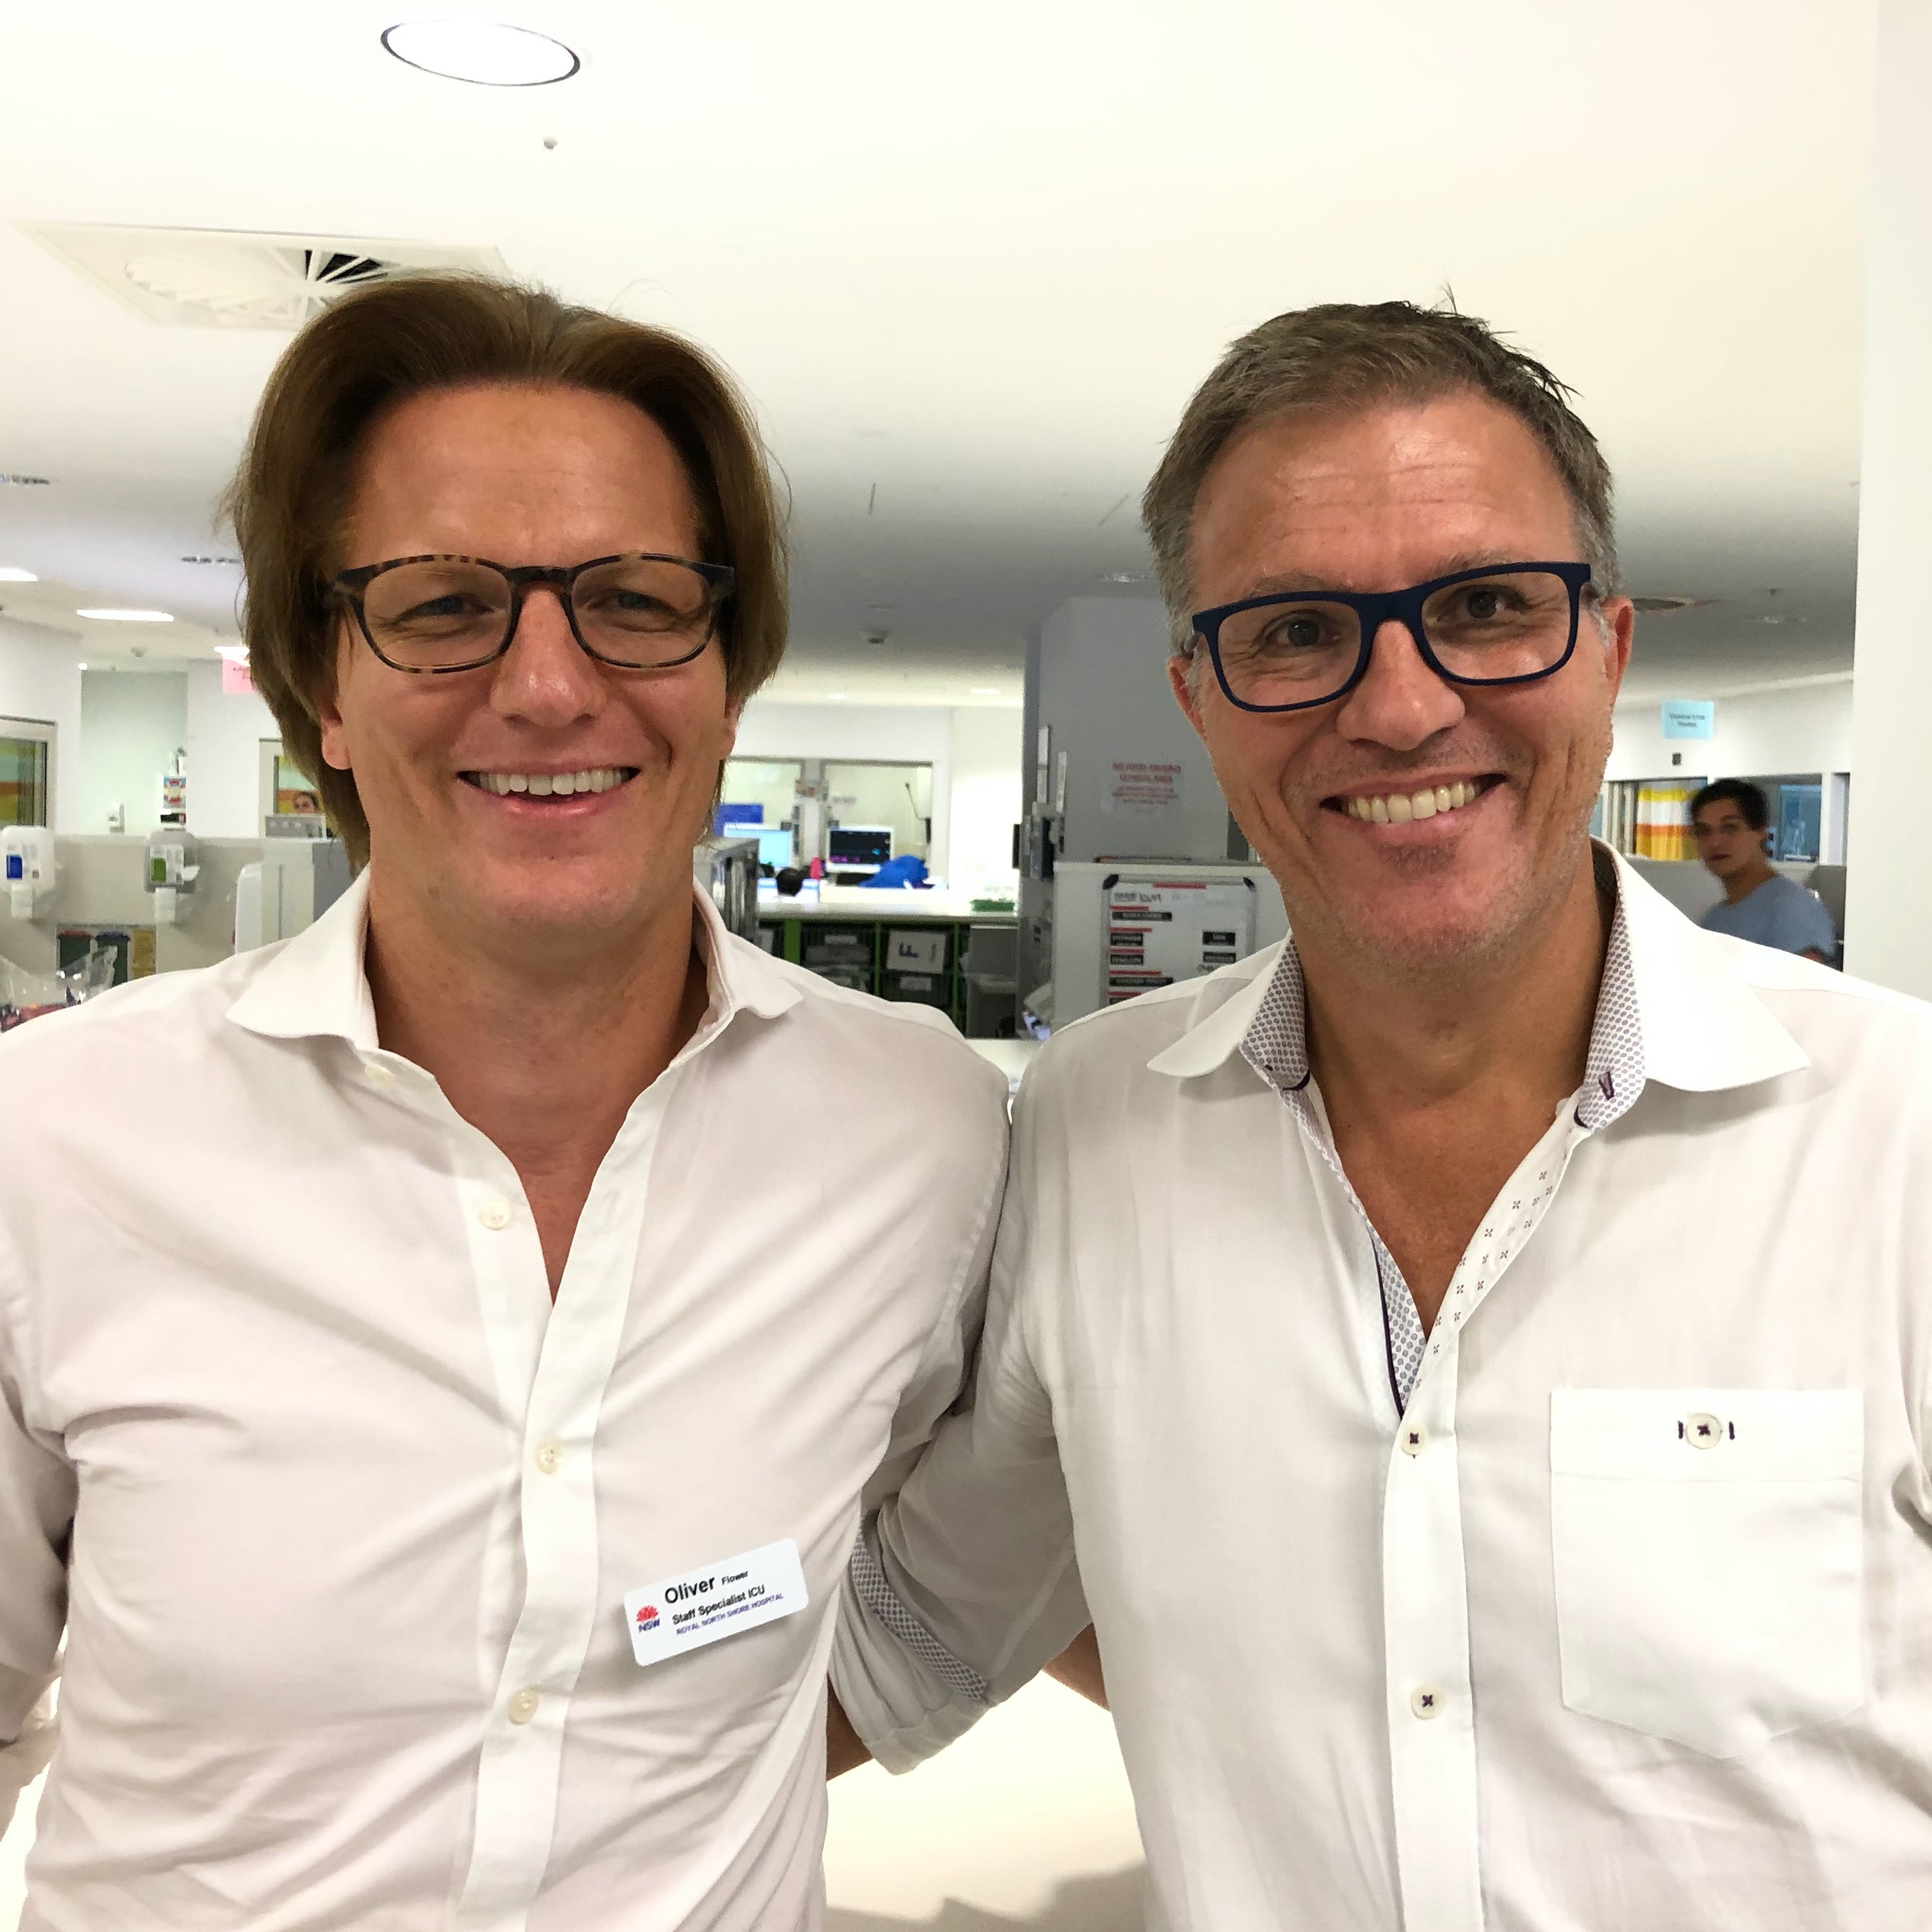 Episode 64: Roger Harris & Oliver Flower - The innovative educationalists behind SMACC and CODA